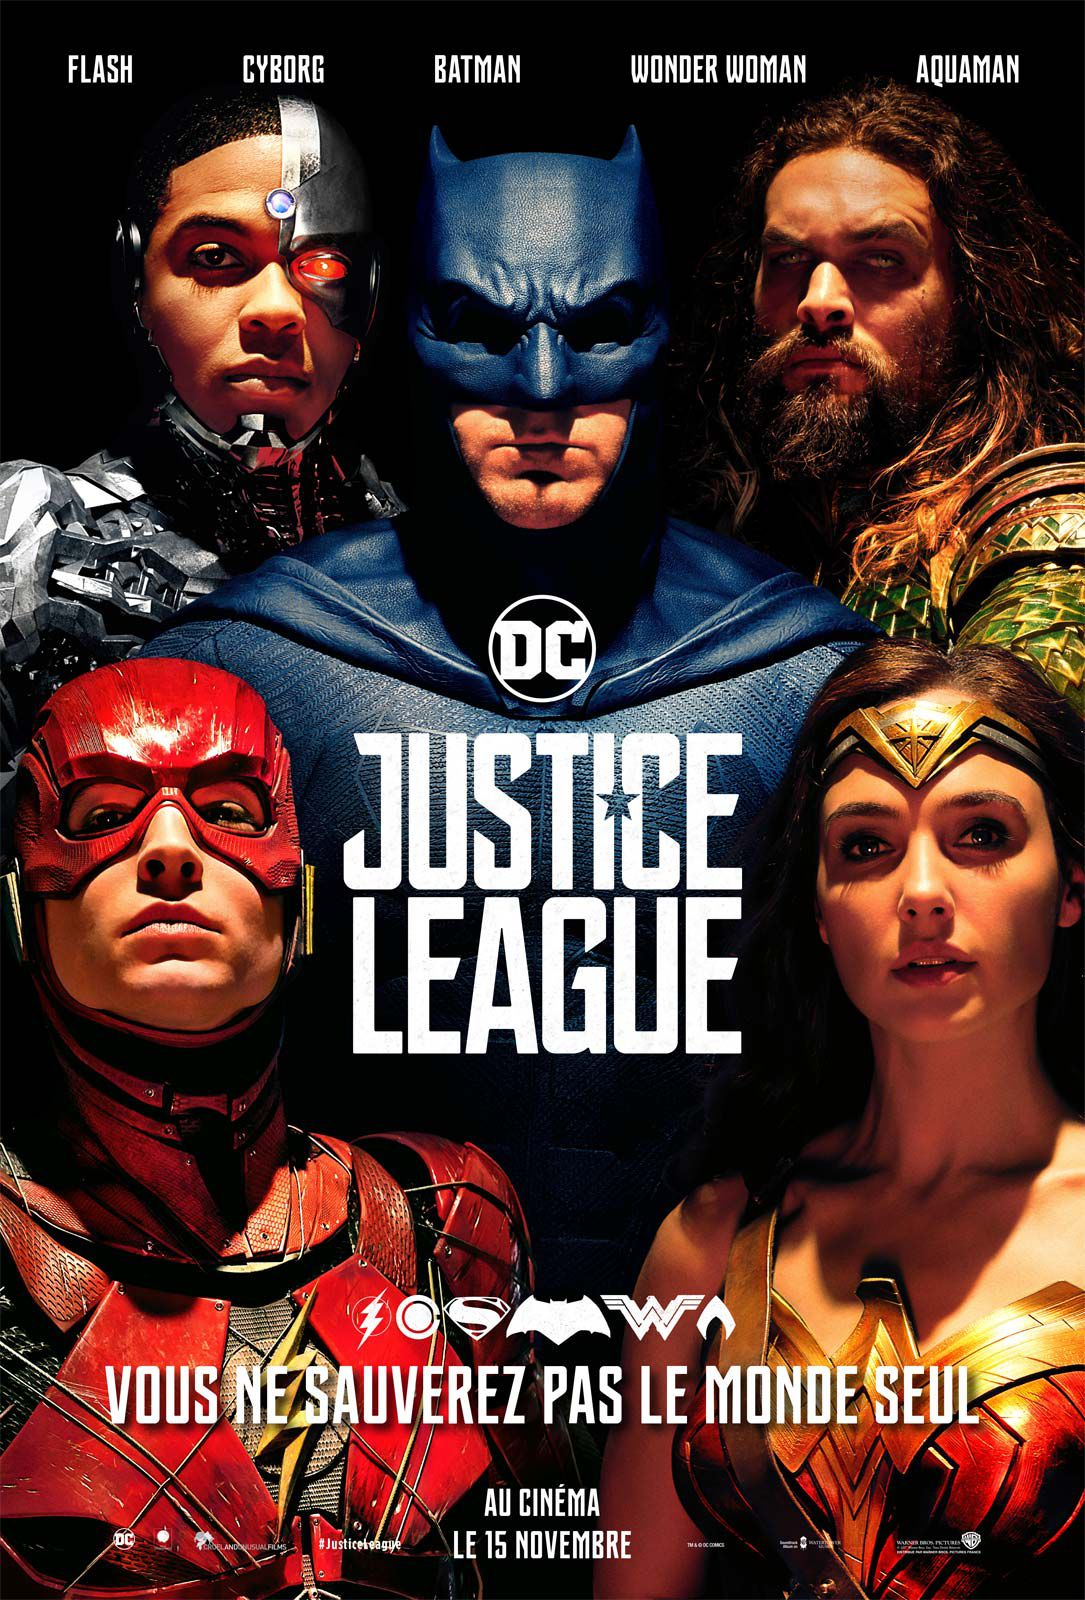 Justice League - Film (2017) streaming VF gratuit complet